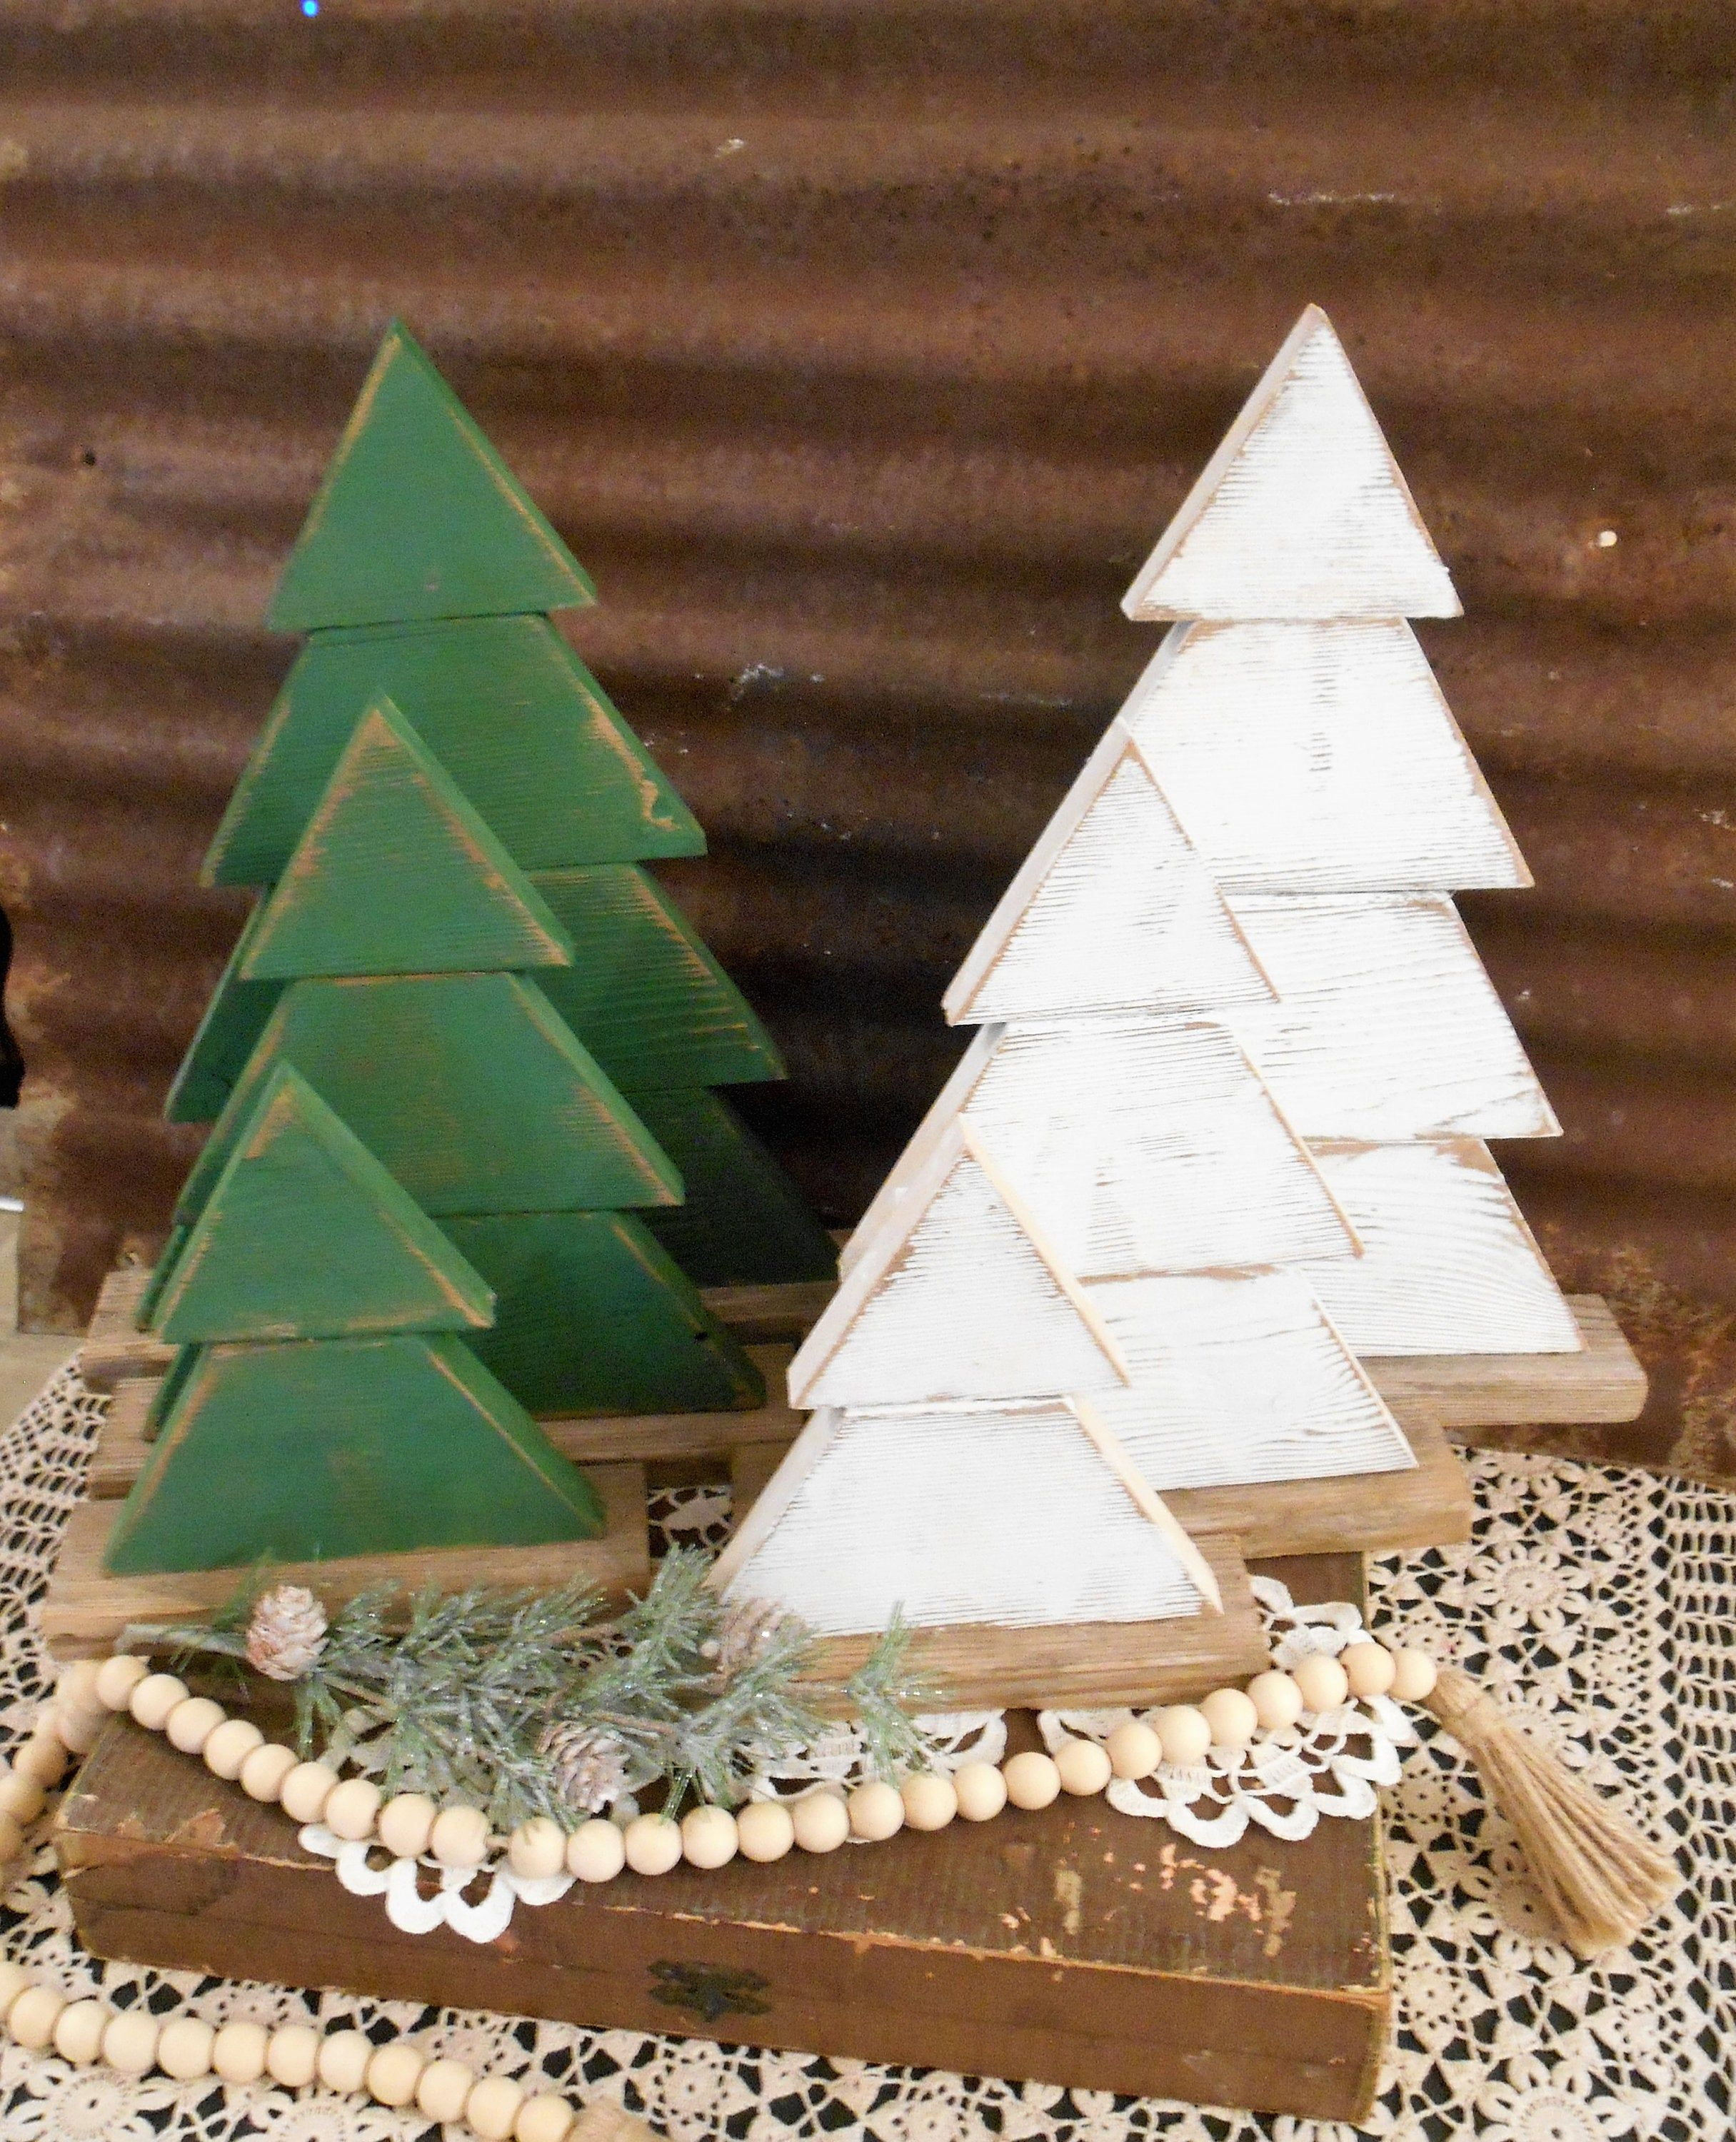 Rustic Wood Christmas Tree  Set of 3 Farmhouse Trees, Rustic Tree Set, Rustic Porch Decor, Holiday Porch Decor, Wood Trees #howtoputribbononachristmastree